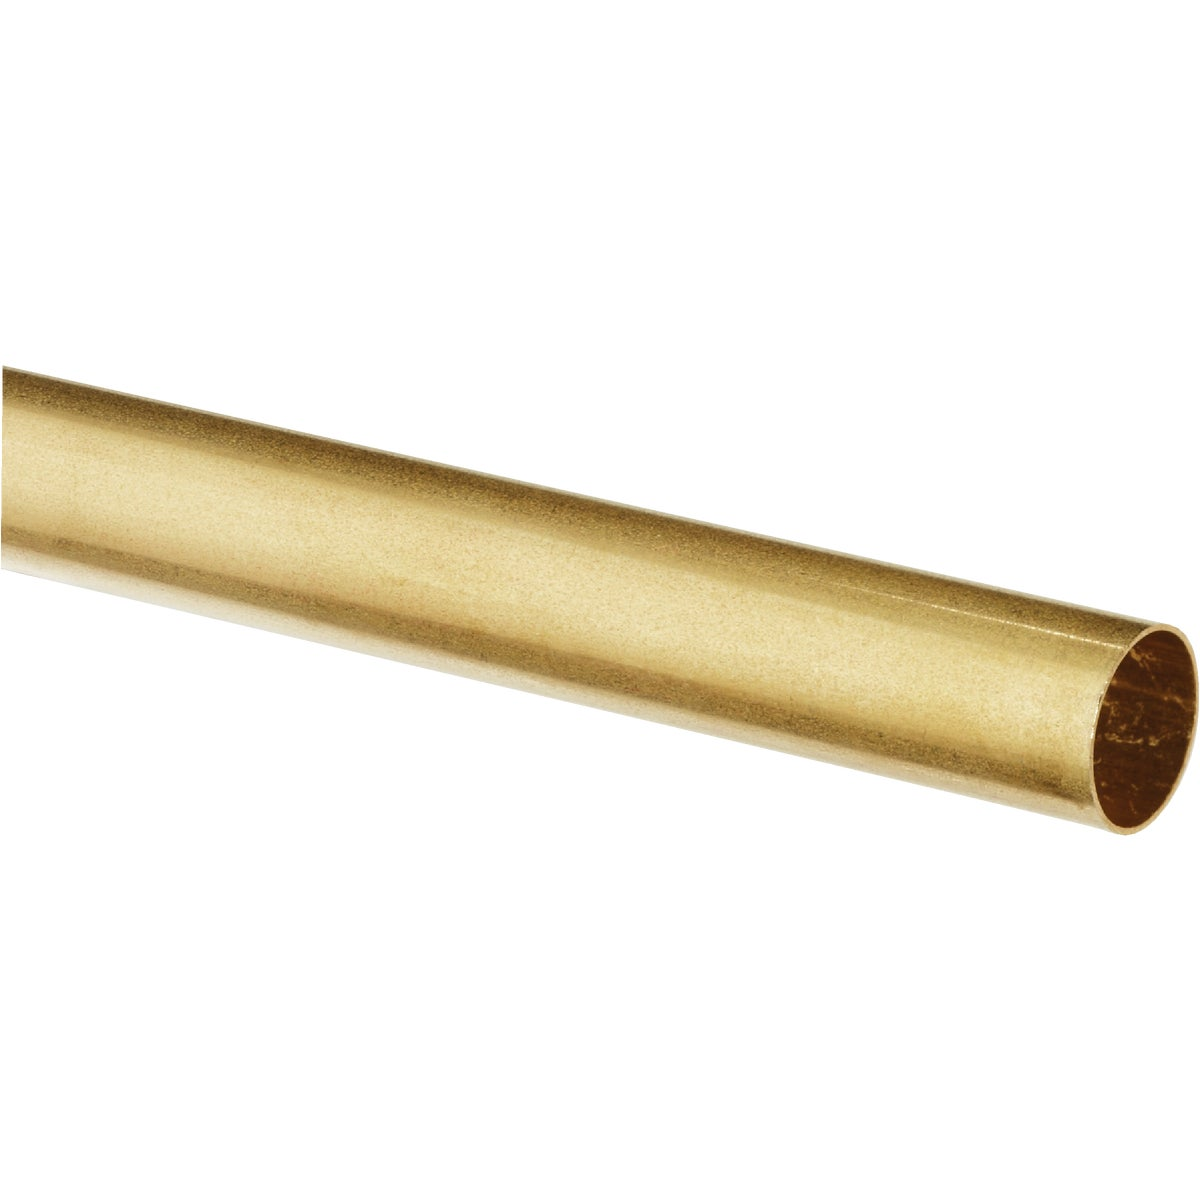 .014X21/32X12 BR RD TUBE - 8144 by K&s Precision Metals